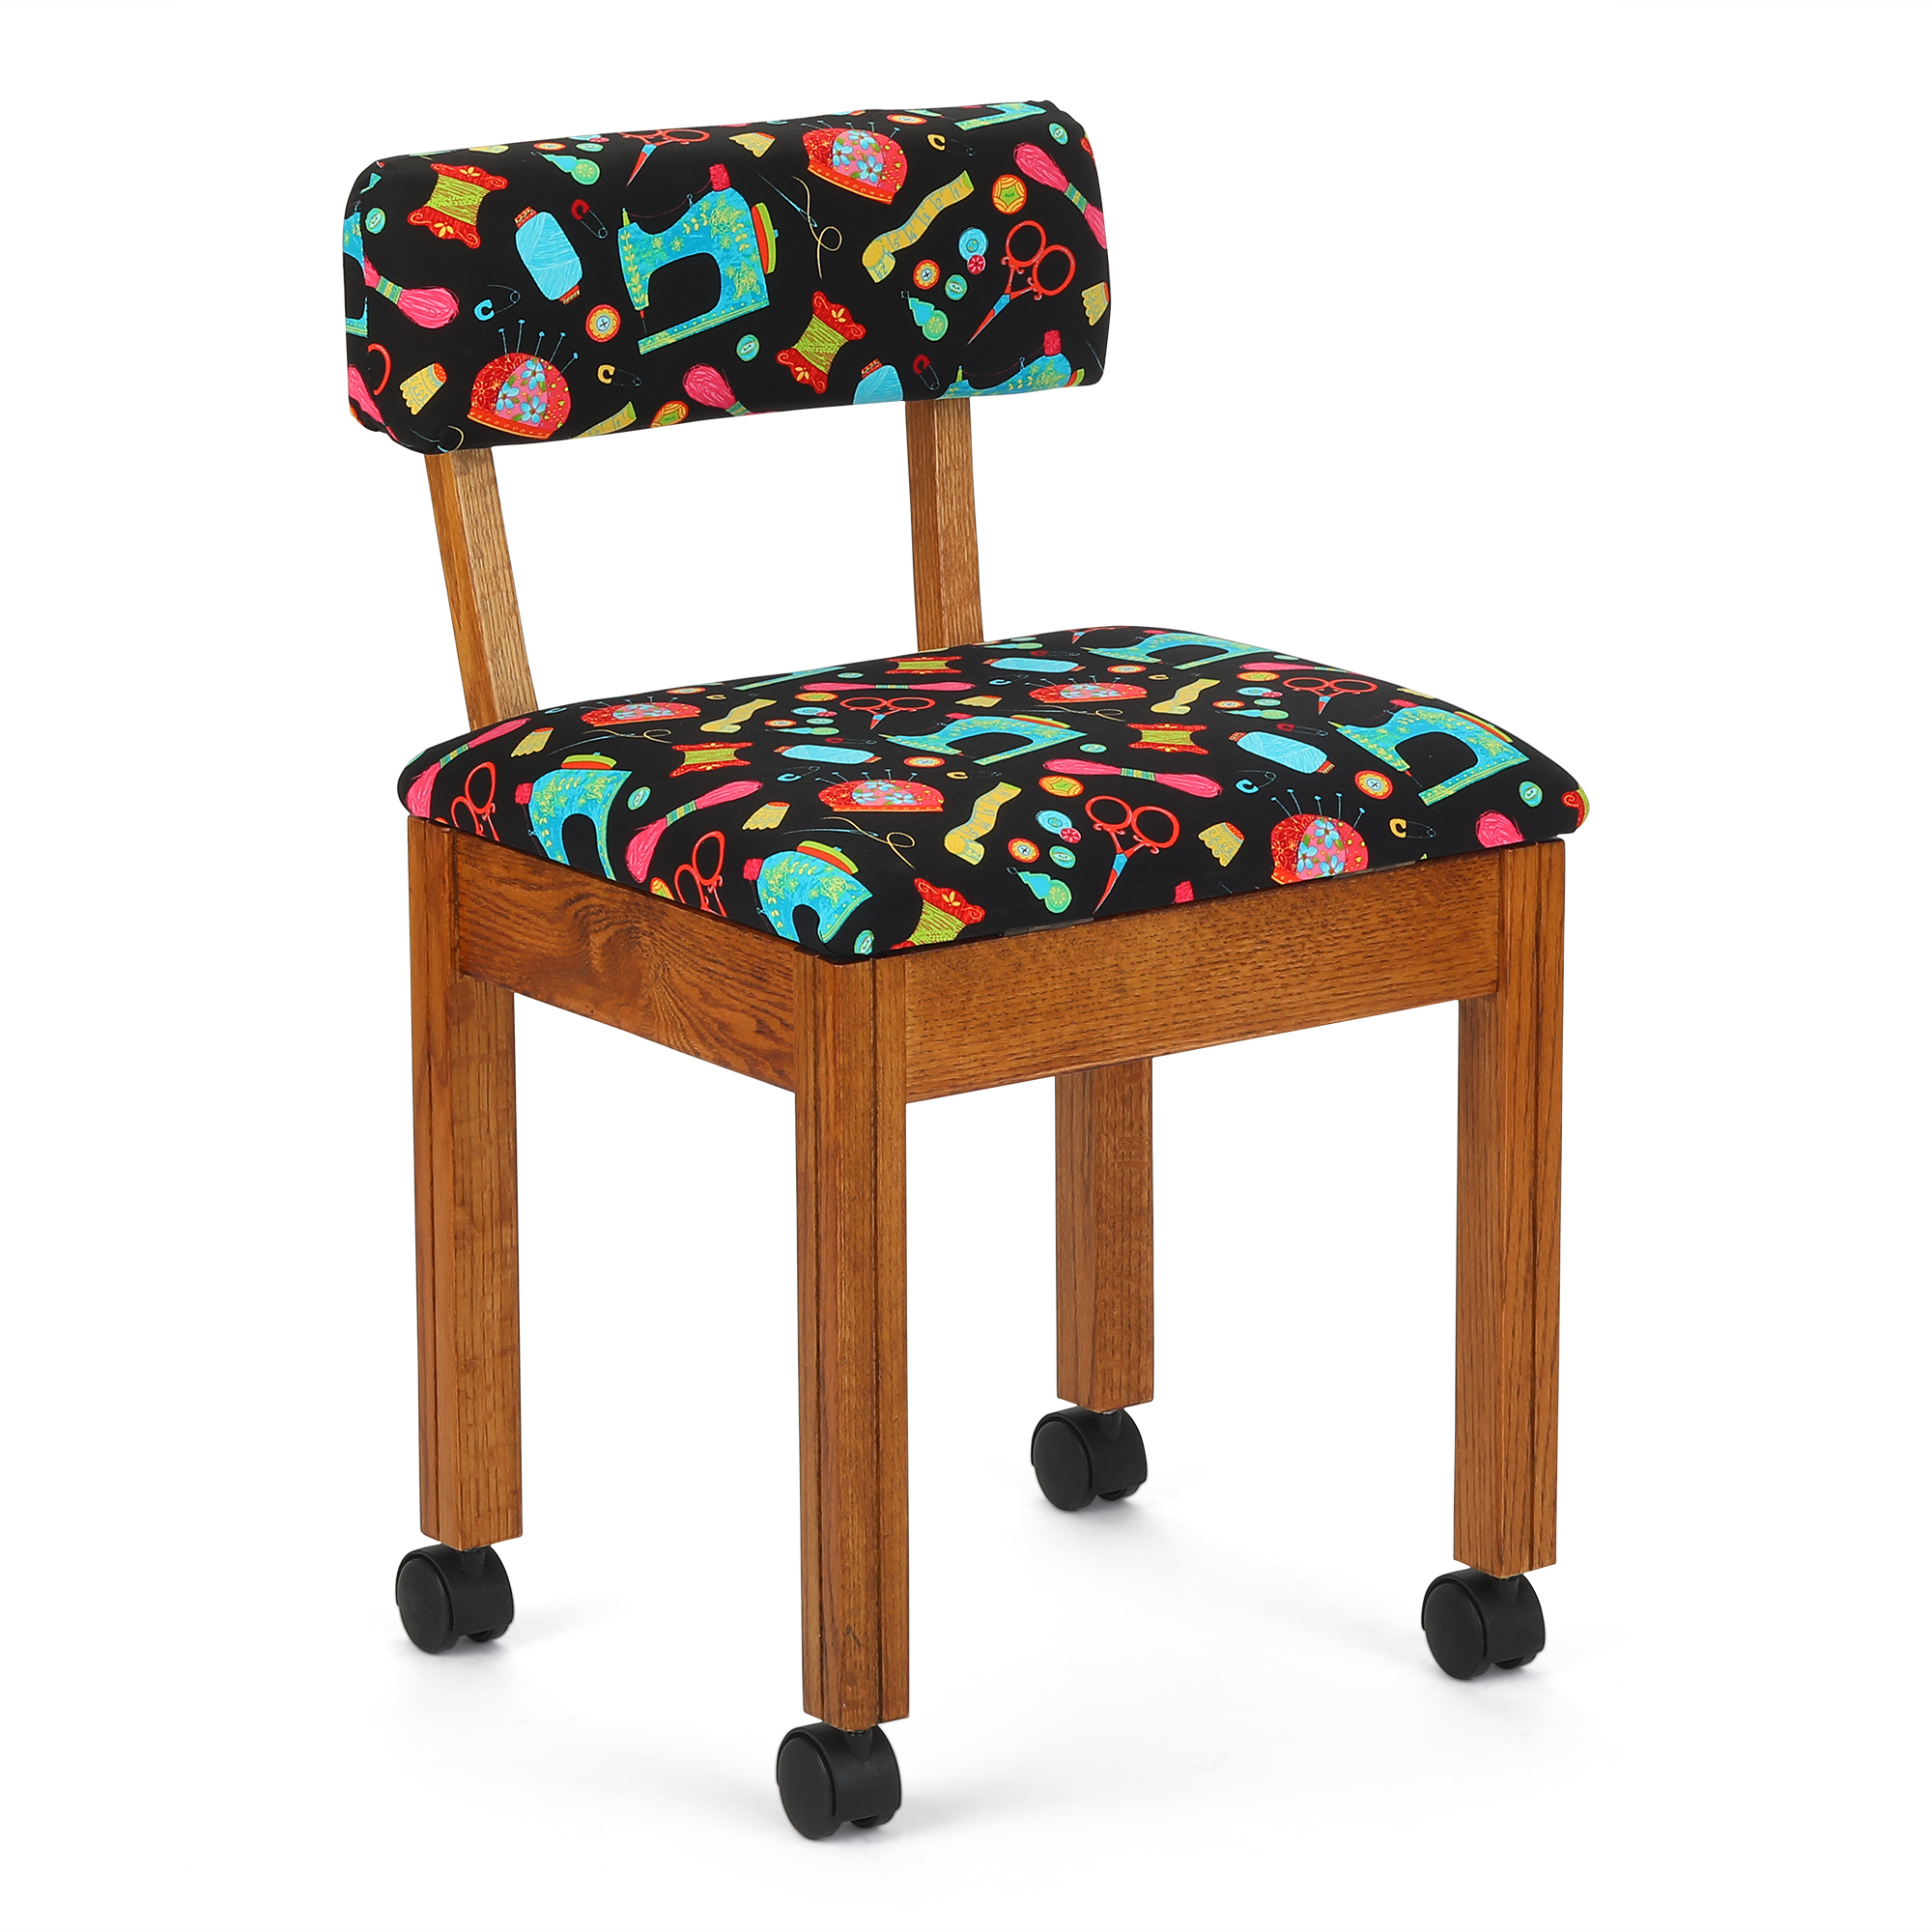 Arrow Wood Sewing and Craft Chair with Under seat Storage and Print Upholstery Fabric